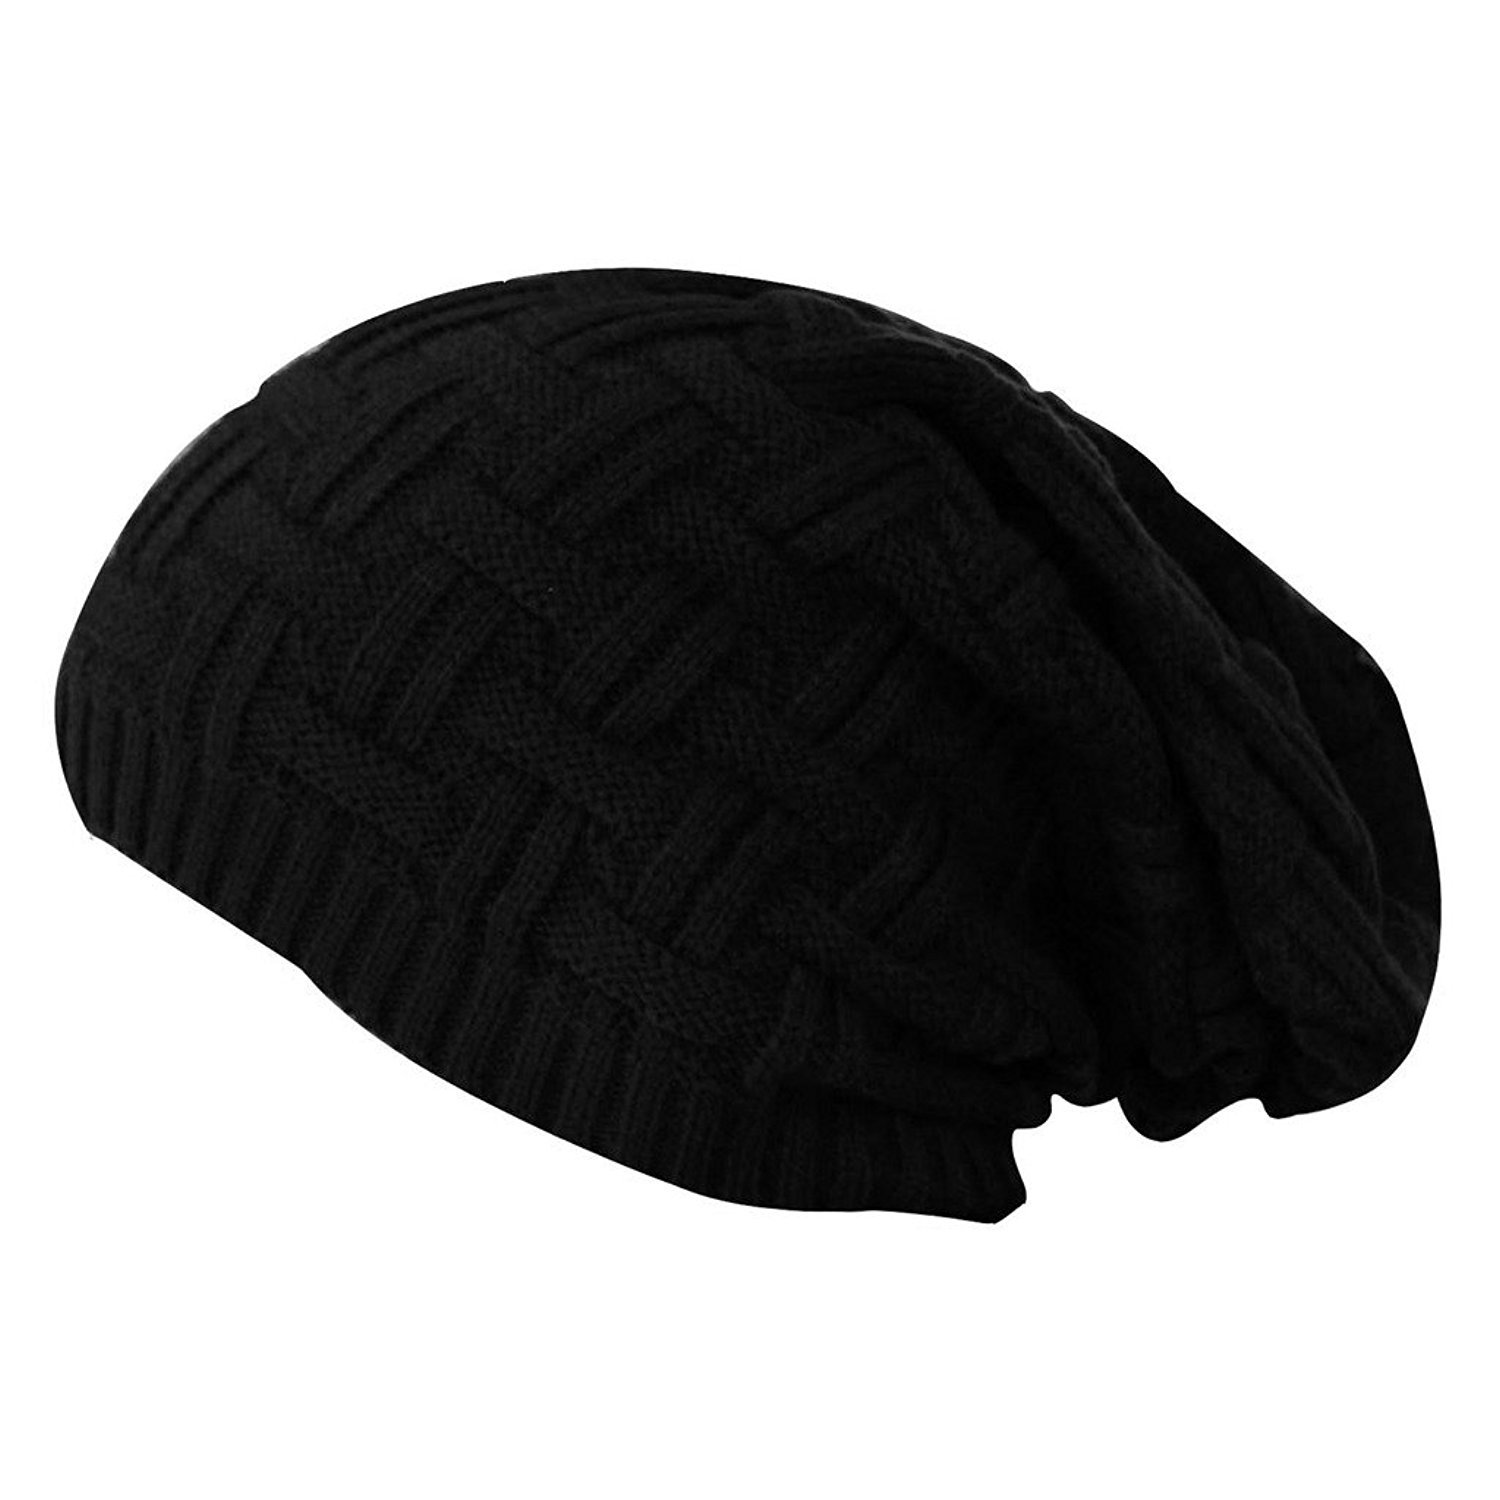 513686fc913 Gajraj Black Knitted Slouchy Beanie for Men   Women (Black)  Amazon.in   Clothing   Accessories